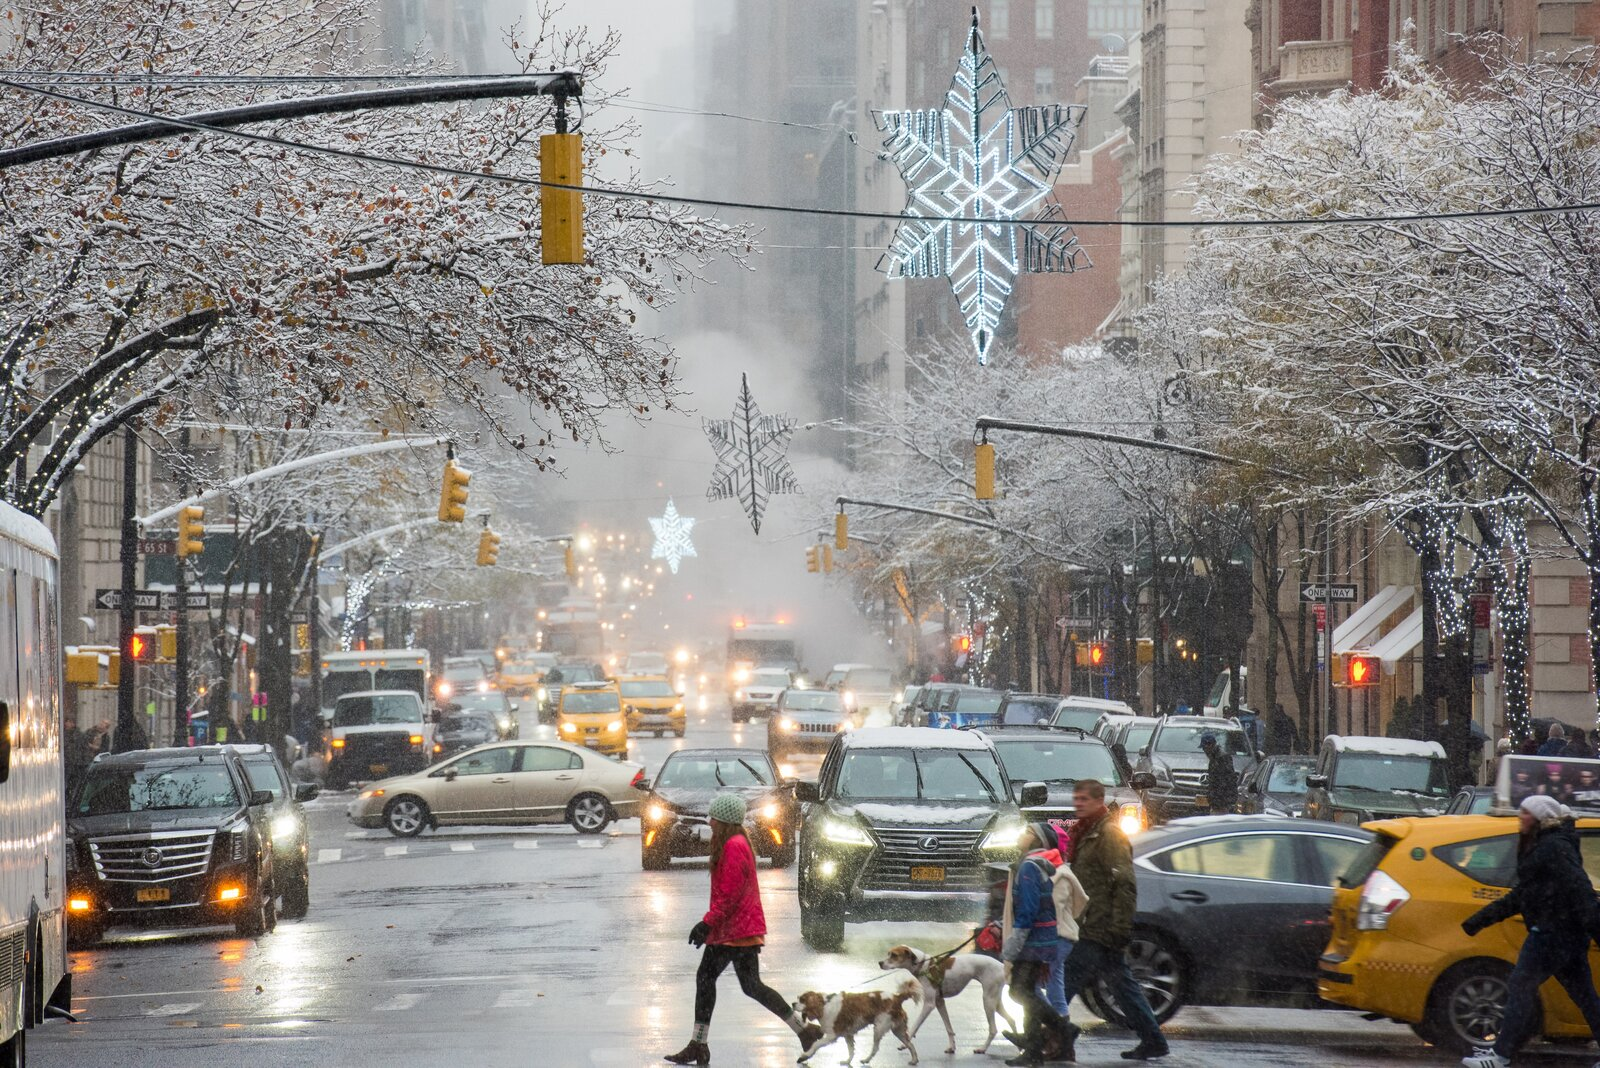 Snowflakes and holiday lights decorate a busy New York City during the holidays.